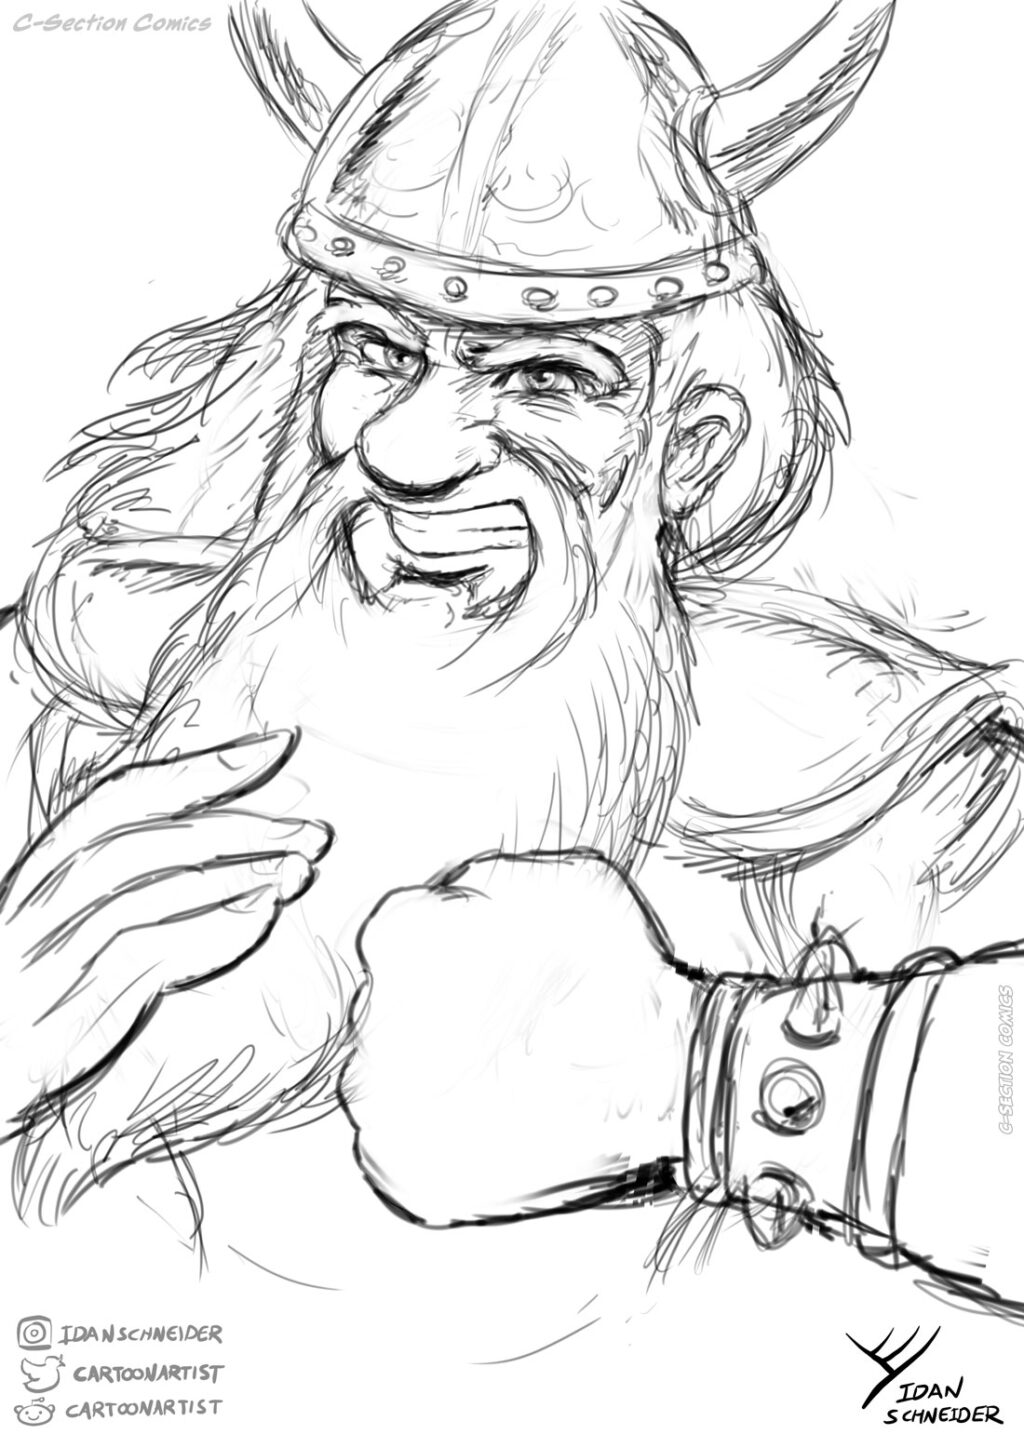 Dwarf warrior - pencil sketch